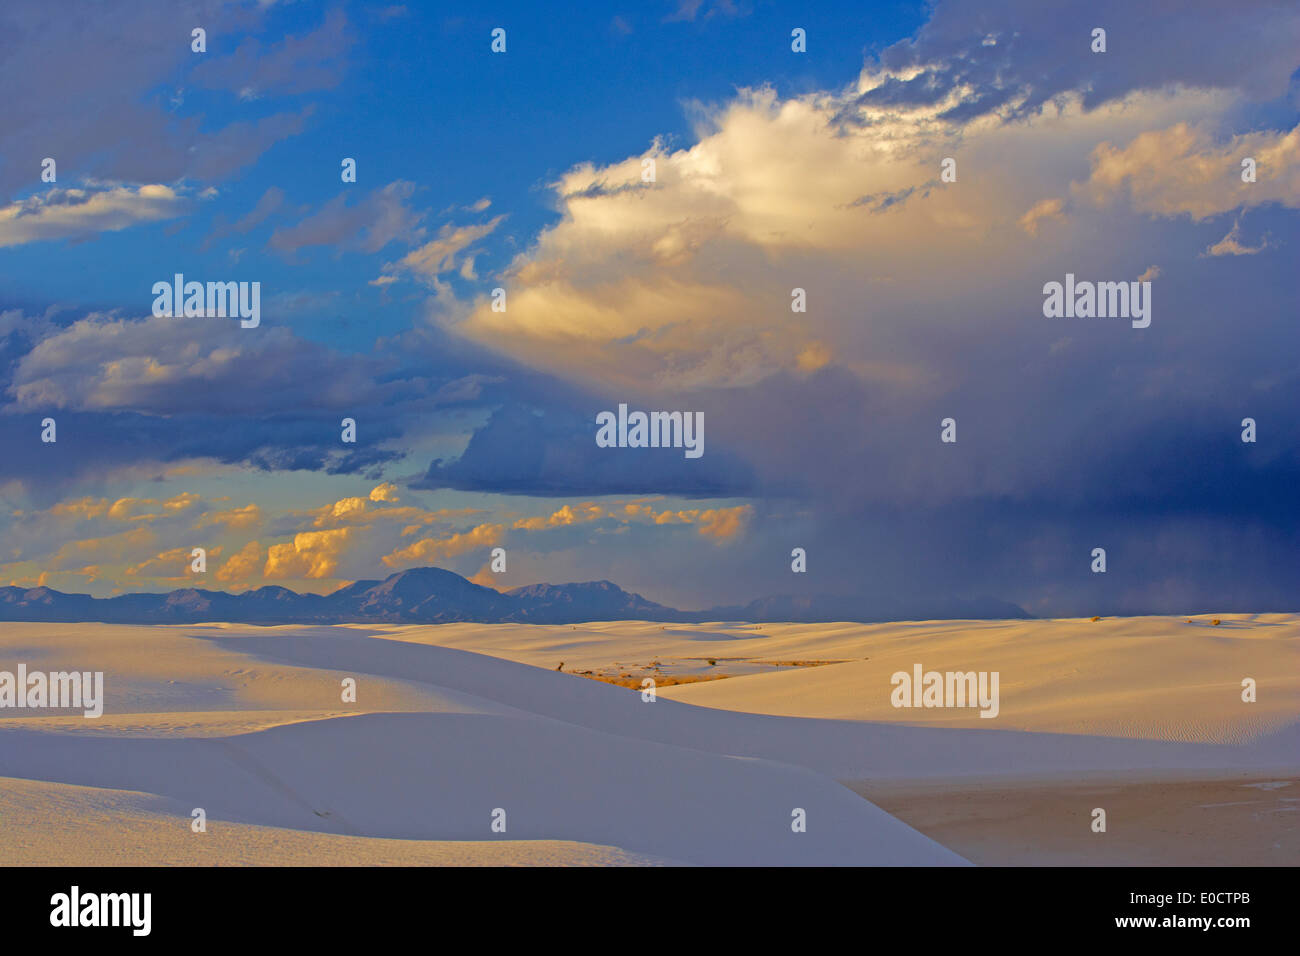 Evening at White Sands National Monument, New Mexico, USA, America - Stock Image